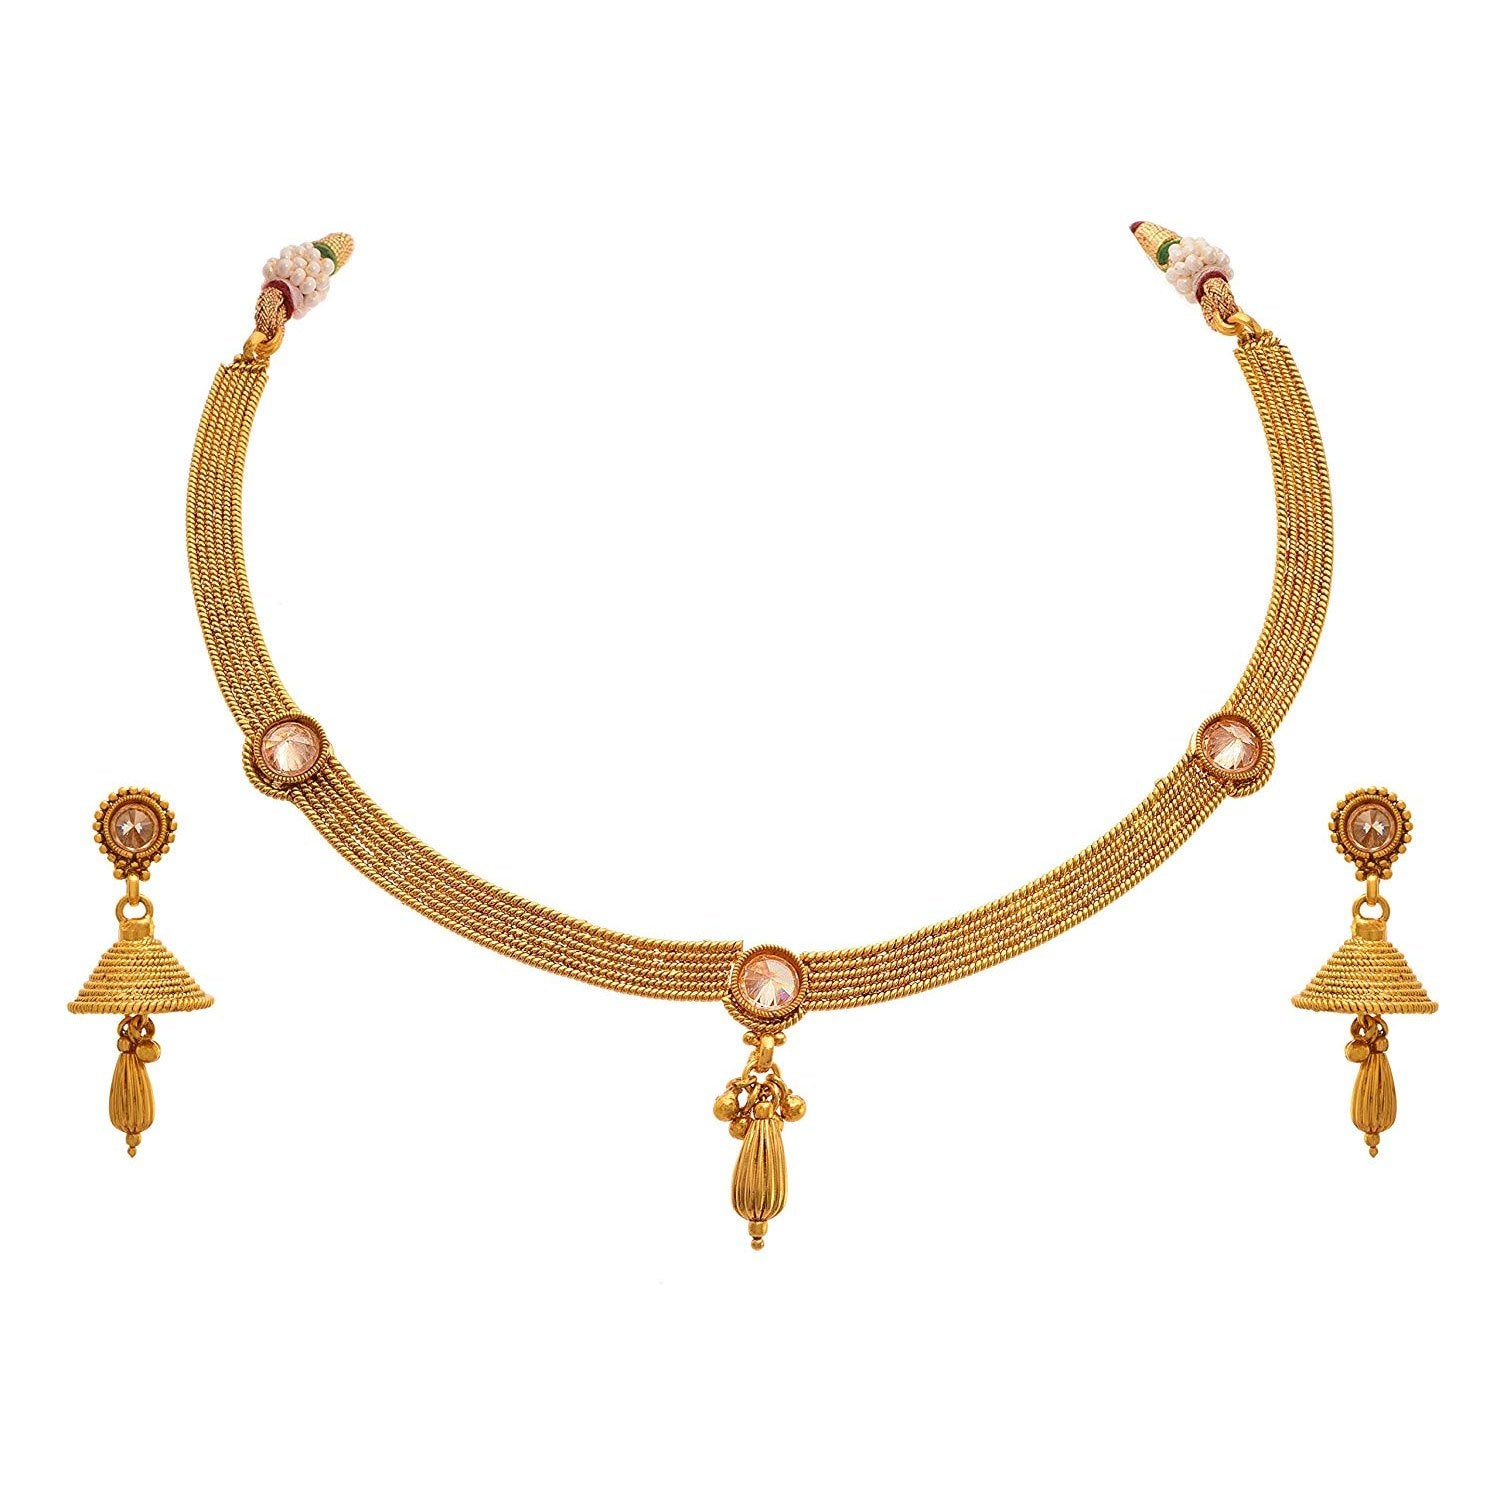 JFL - Traditional Ethnic One Gram Gold Plated Polki Diamond Designer Necklace Set with Earrings for Women & Girls.